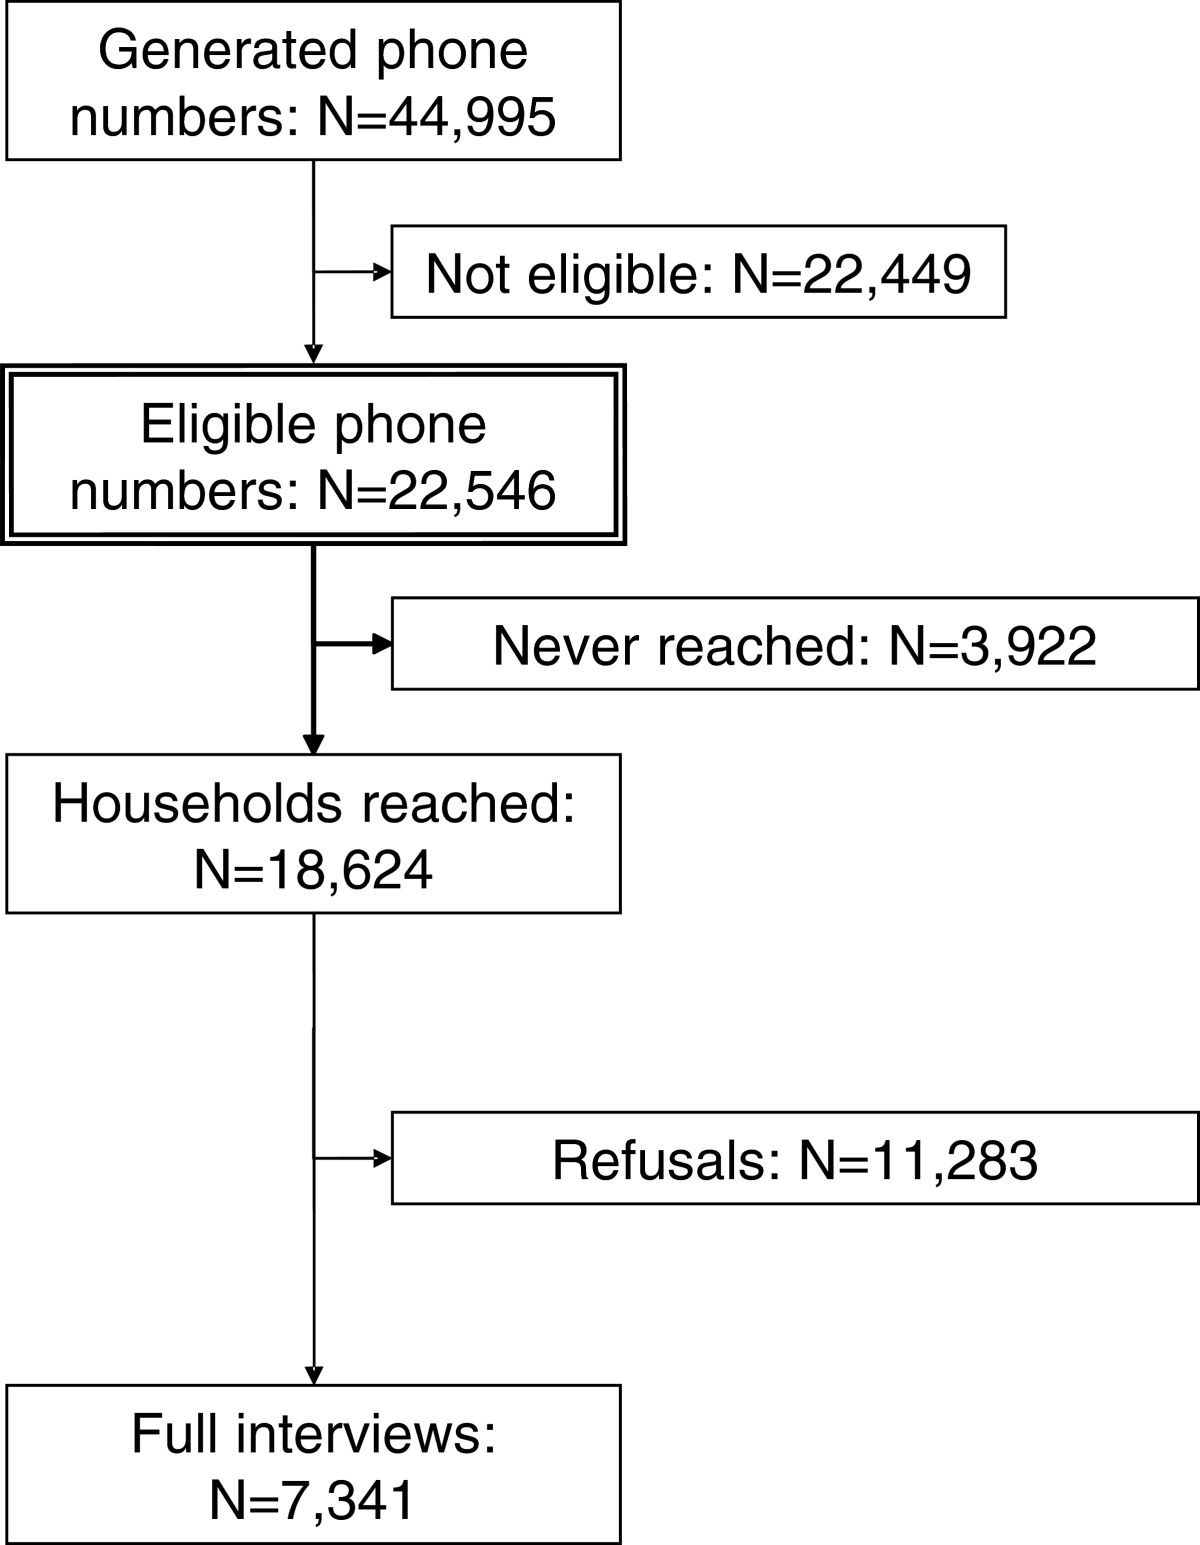 https://static-content.springer.com/image/art%3A10.1186%2F1471-2458-13-376/MediaObjects/12889_2012_Article_5295_Fig1_HTML.jpg